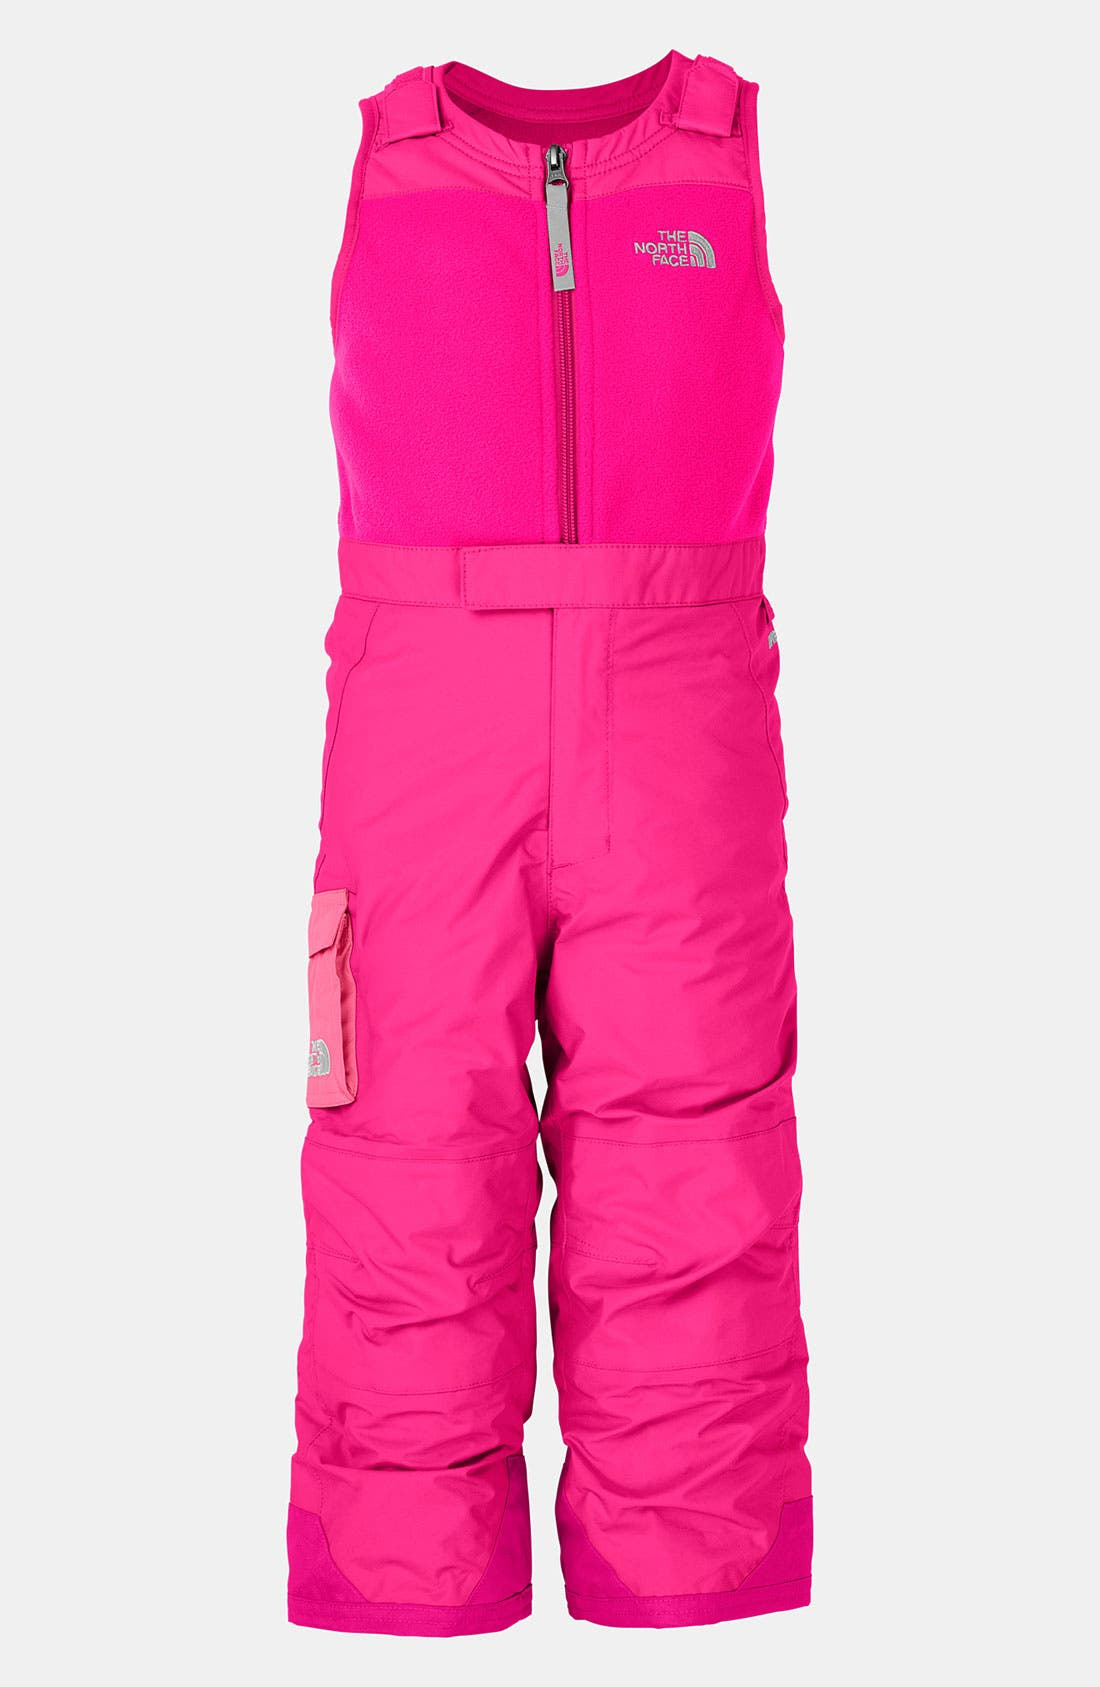 Main Image - The North Face 'Snowdrift' Insulated Bib Overalls (Toddler)